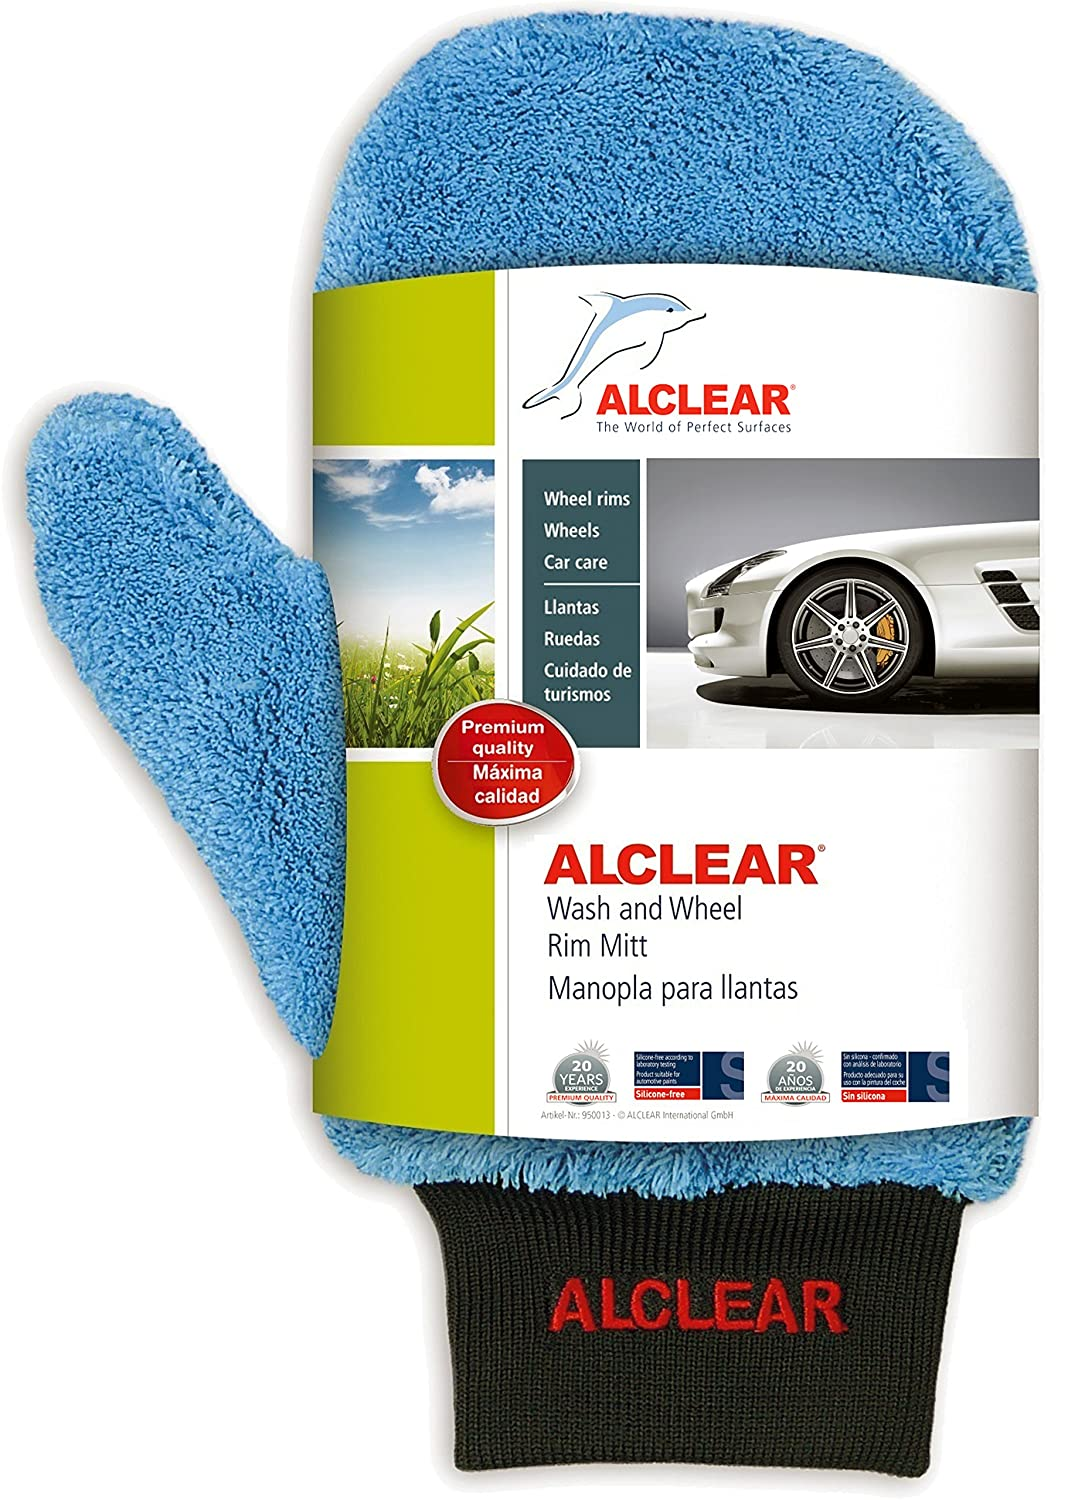 ALCLEAR 950013 Ultra-Microfiber professional scratch free Wheel Rim Mitt, blue with black cuff. Size approx. 10.24 x 4.72 in.